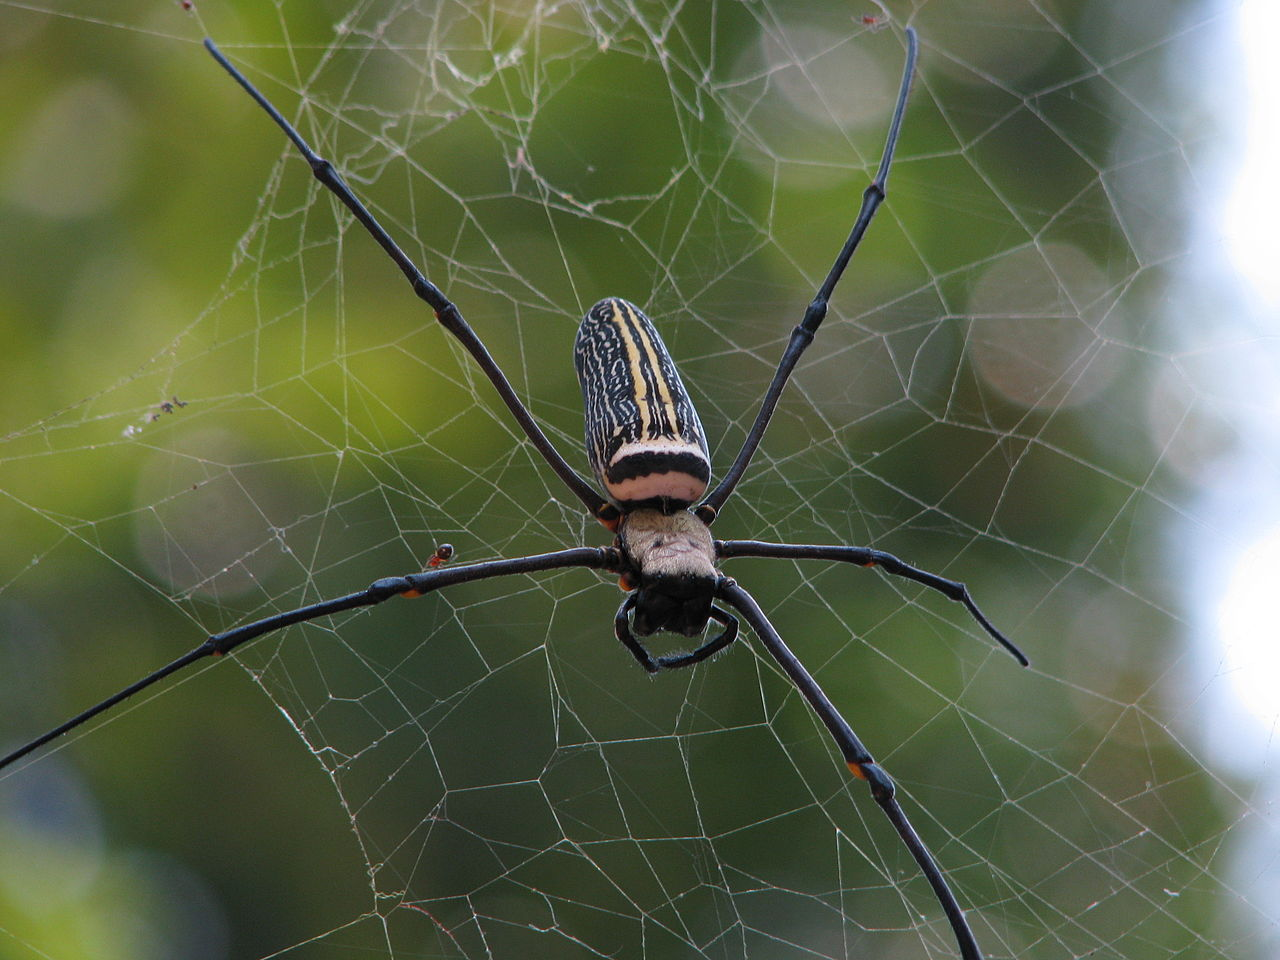 FileSpider In Madhabpur Forest Srimangaljpg Wikimedia Commons